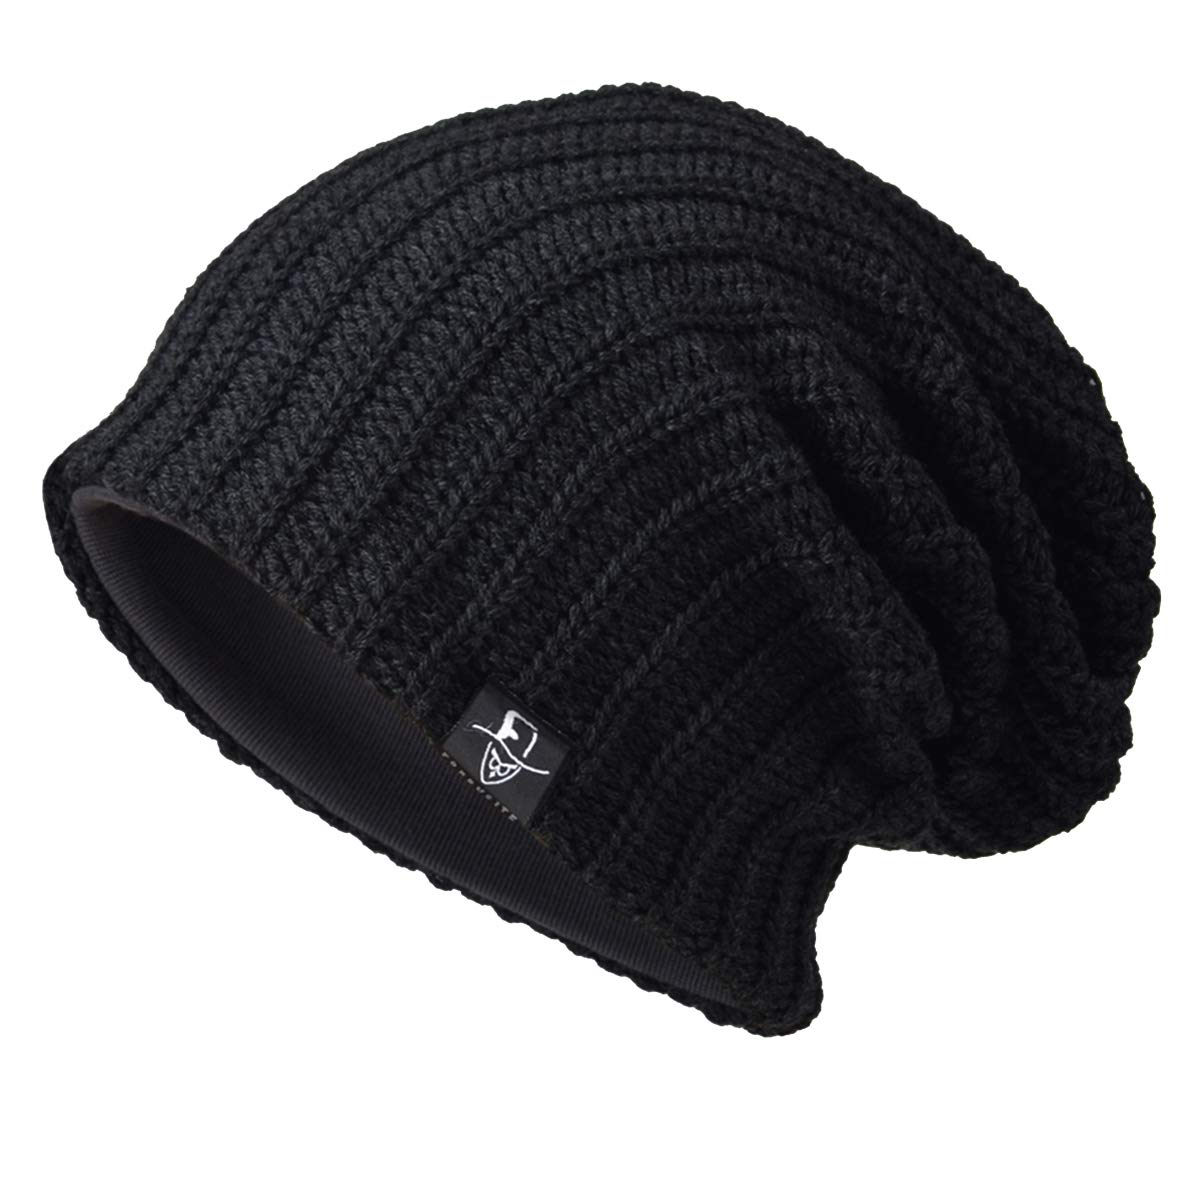 698a7f04c71 Ruphedy Men Knit Slouchy Beanie Skull Cap Oversized Winter Long Baggy  Stretchy Ski Hat N010 (B019-Black) at Amazon Men s Clothing store